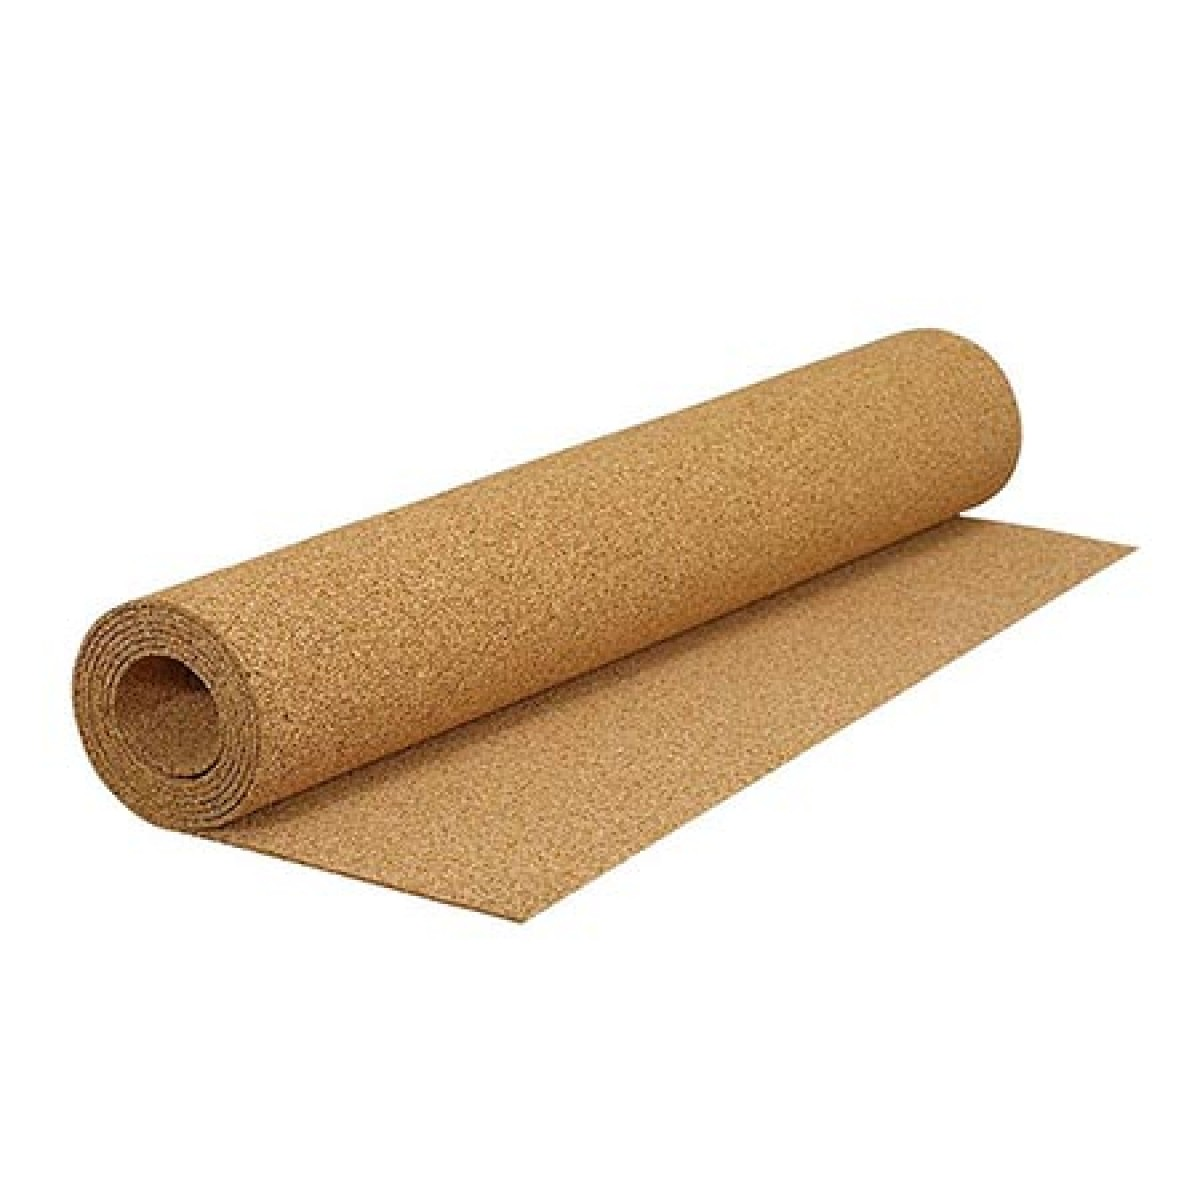 Forbo Flooring Mills Corboo Solid Locking Bamboo With Cork